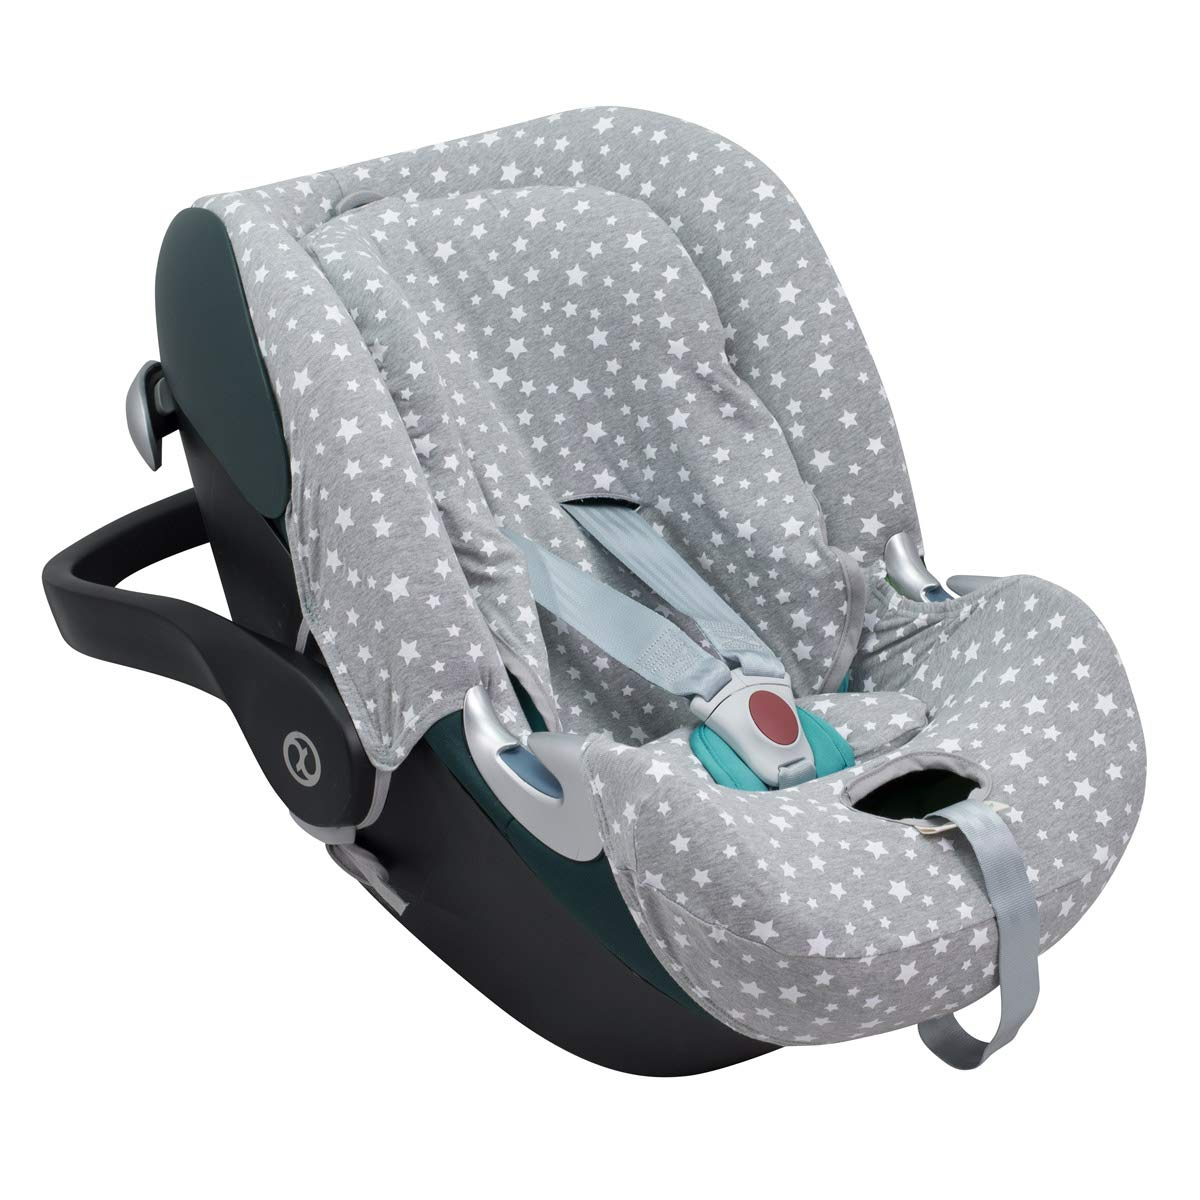 Cloud Q M JANABEBE Cover Liner Compatible with Cybex Aton 2 Cloud Q-M Black Rayo